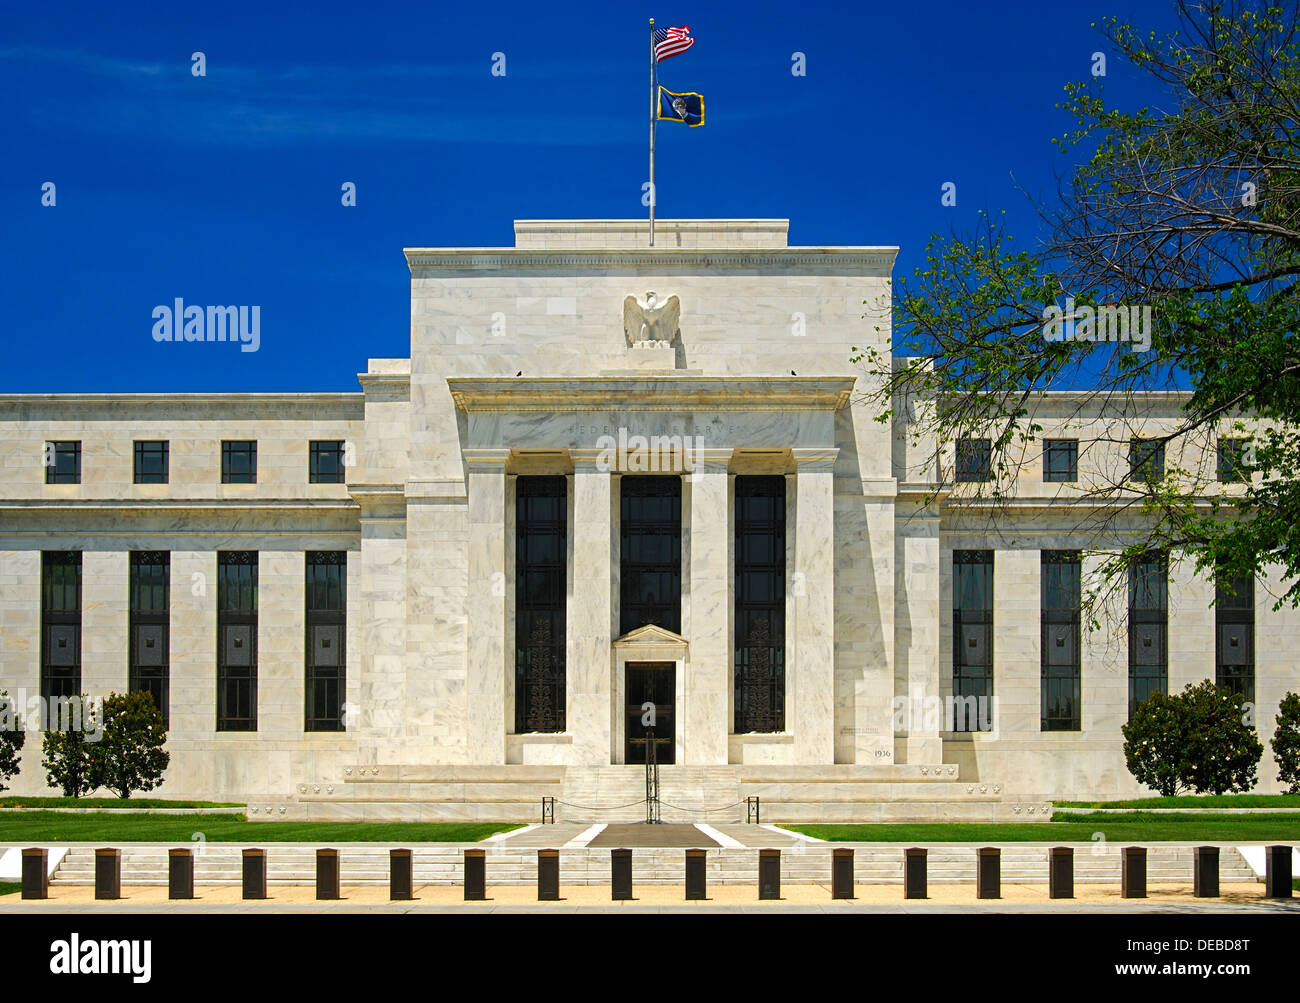 Marriner S. Eccles Federal Reserve Board Building, Headquarters of the United States Federeal Reserve, Washington, - Stock Image